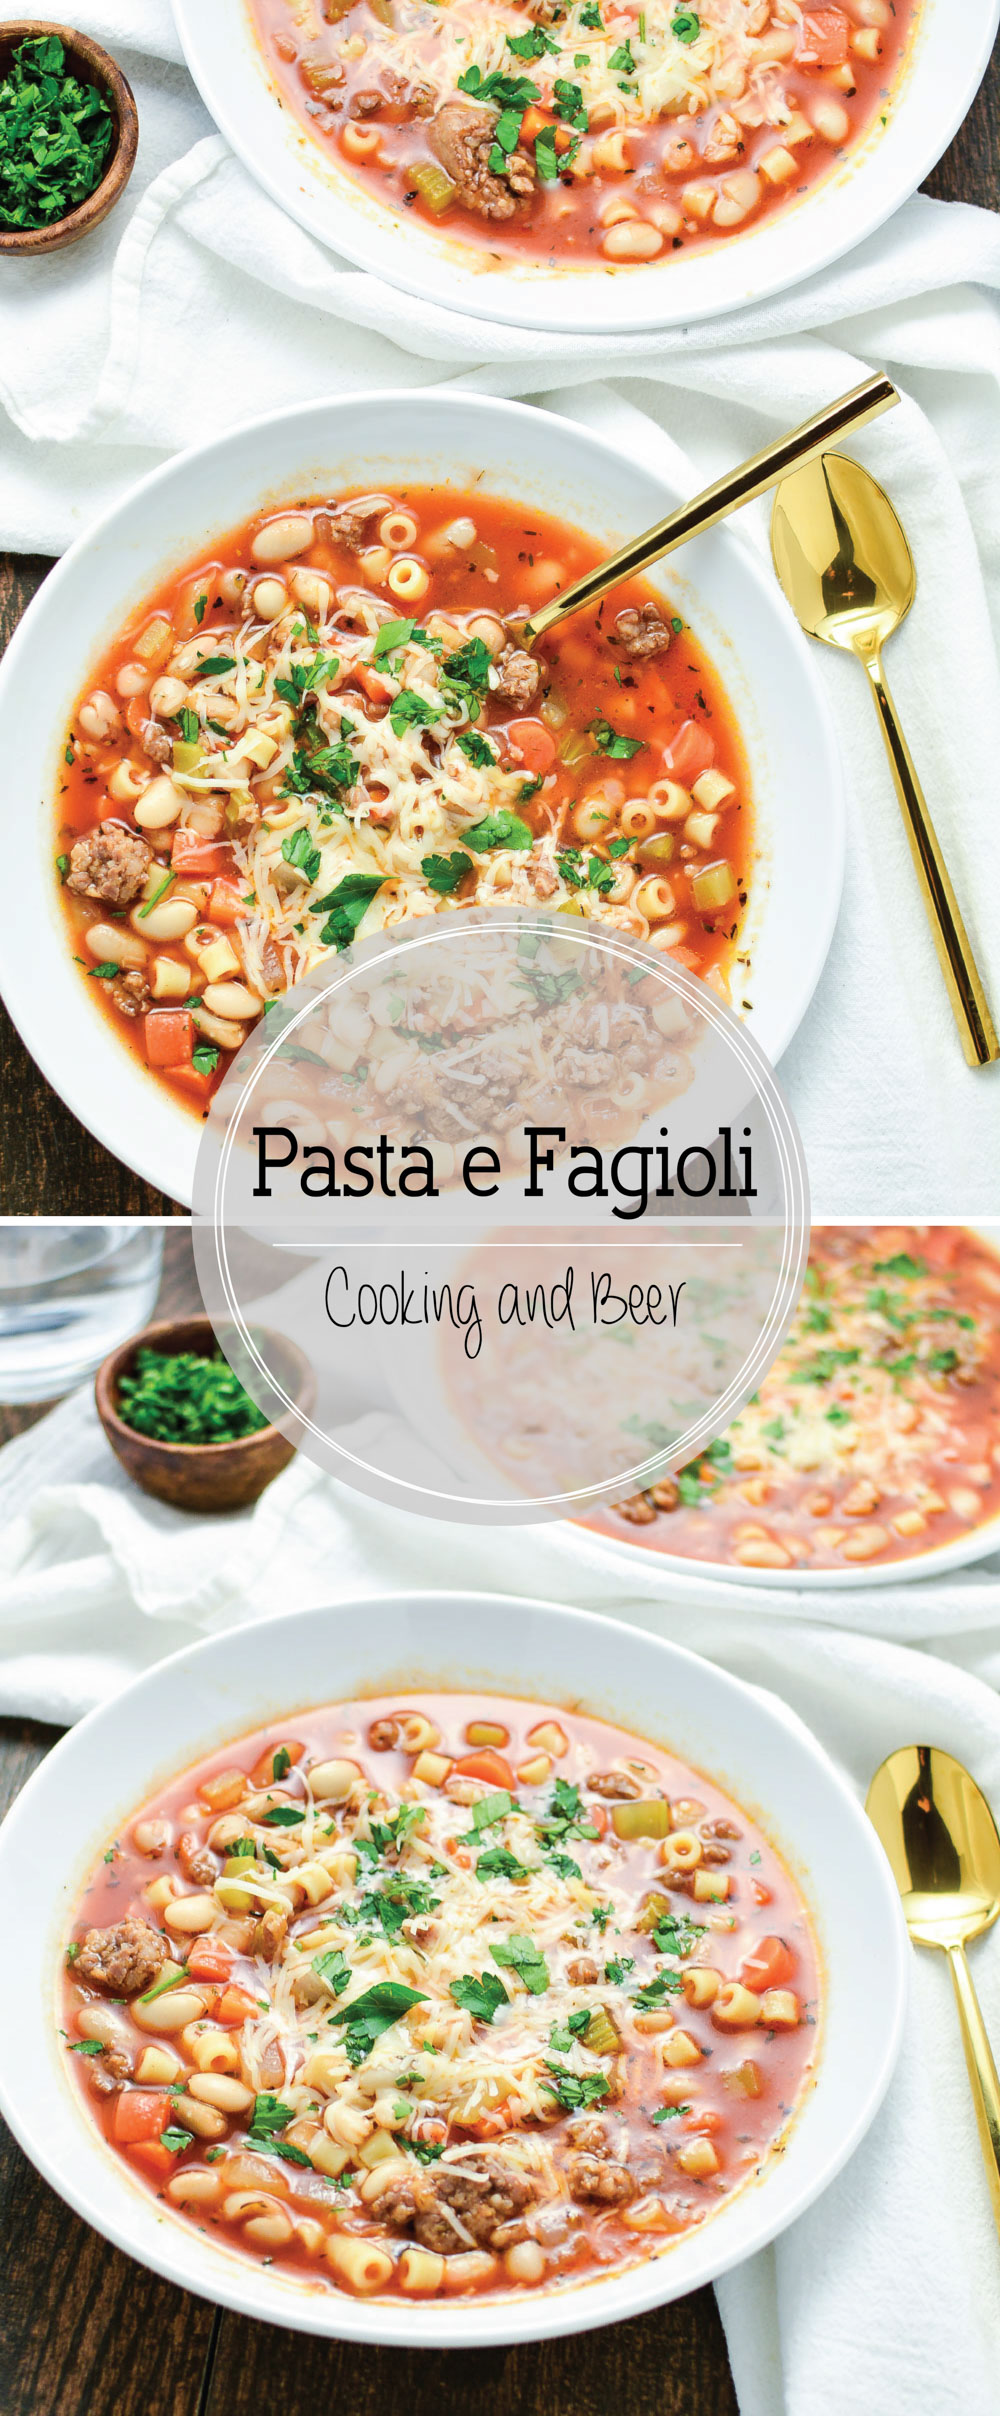 Pasta e Fagioli is a classic Italian soup. This version combines ham and sausage in one glorious veggie-loaded soup!